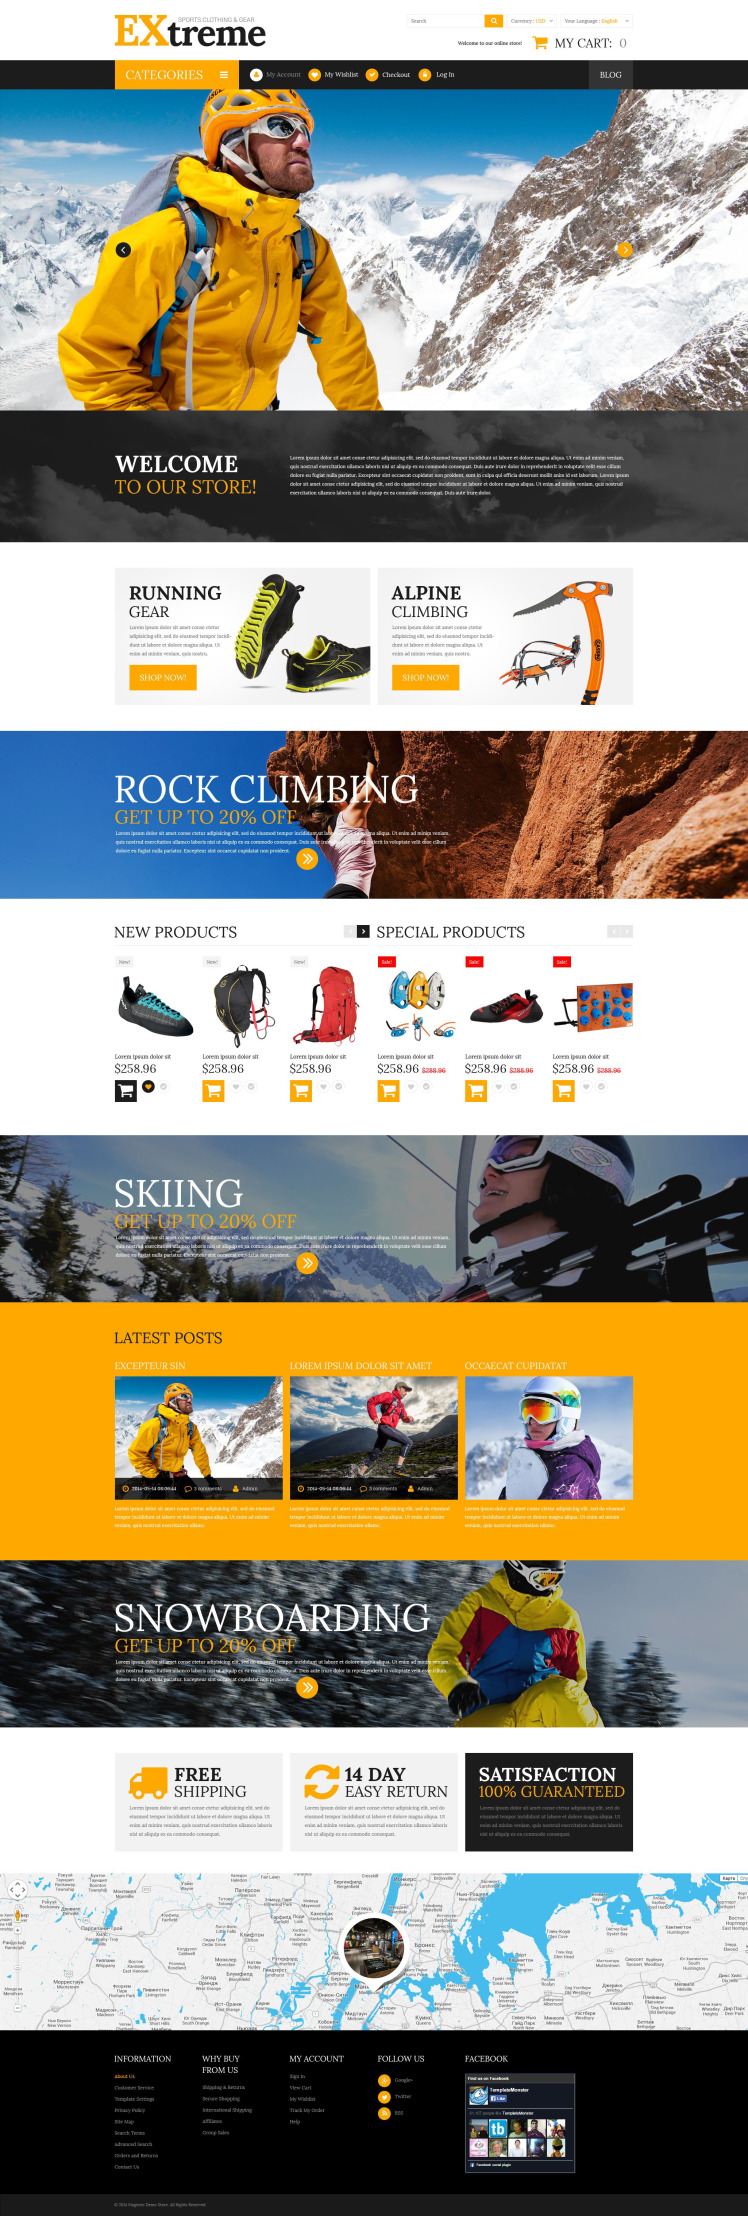 Extreme Sports Gear Magento Themes